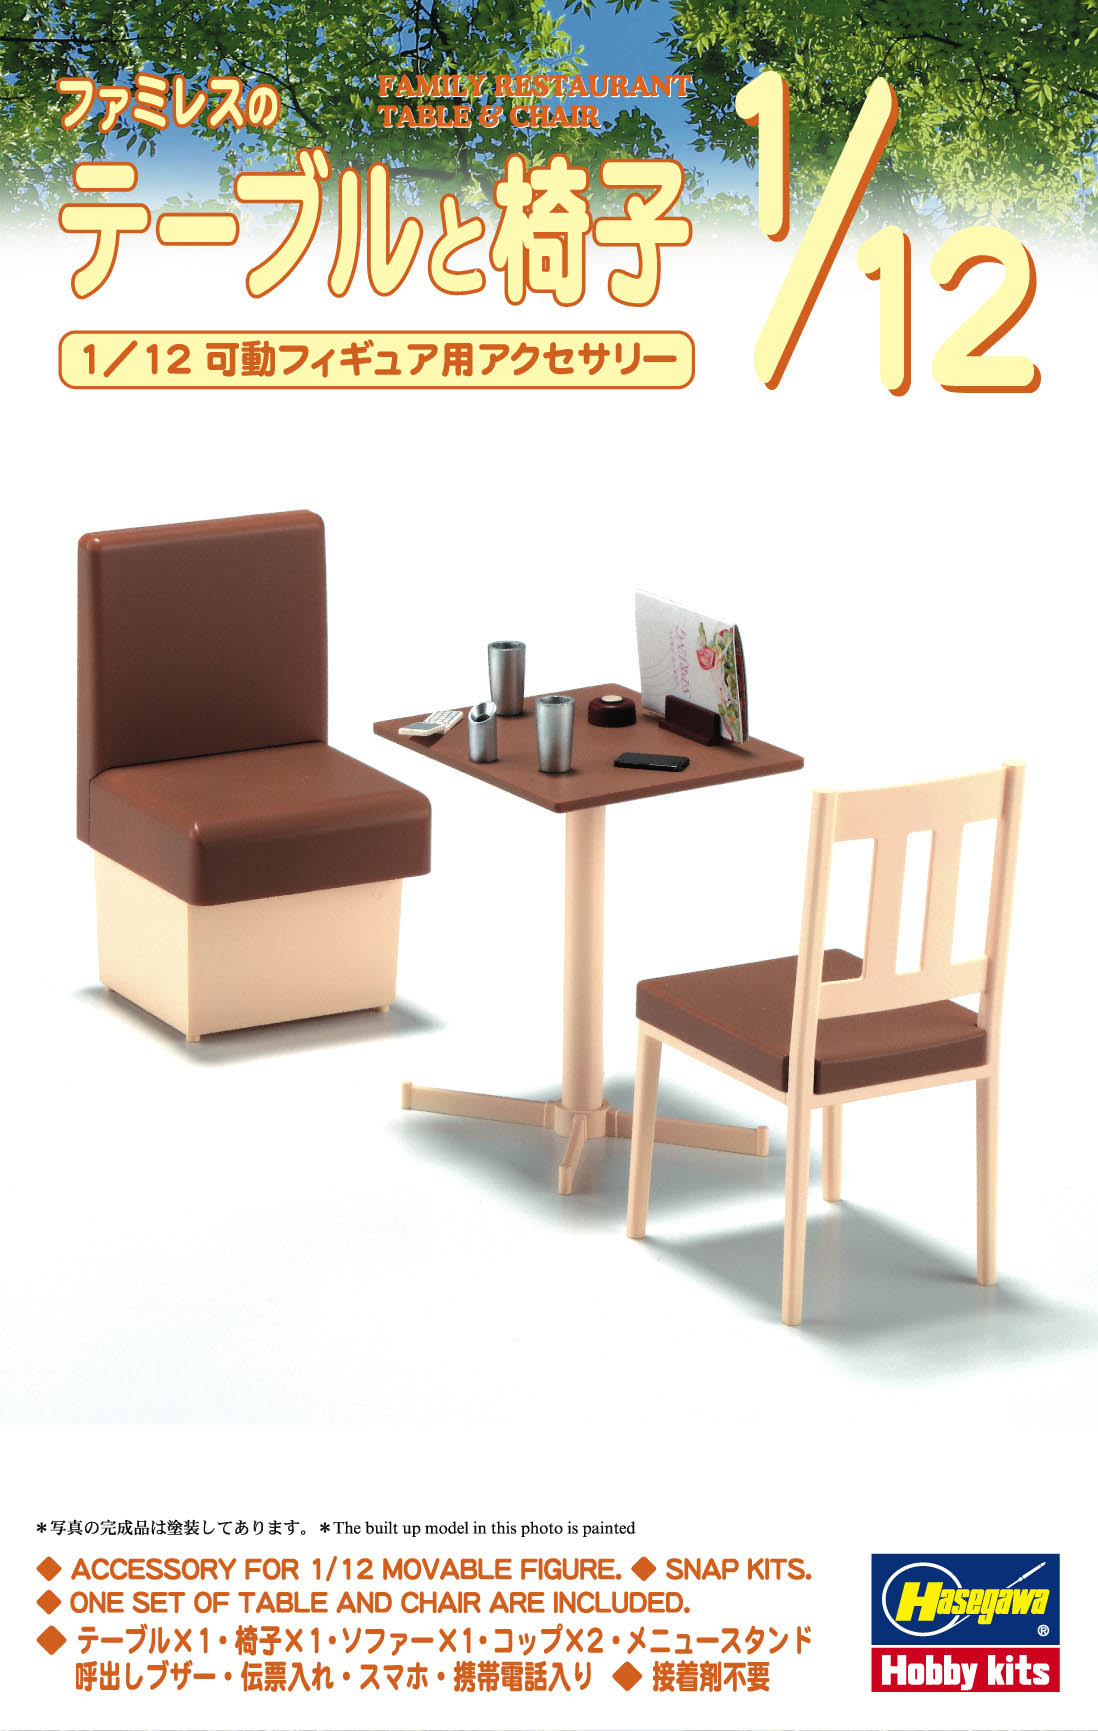 Hasegawa Family Restaurant Table & Chair